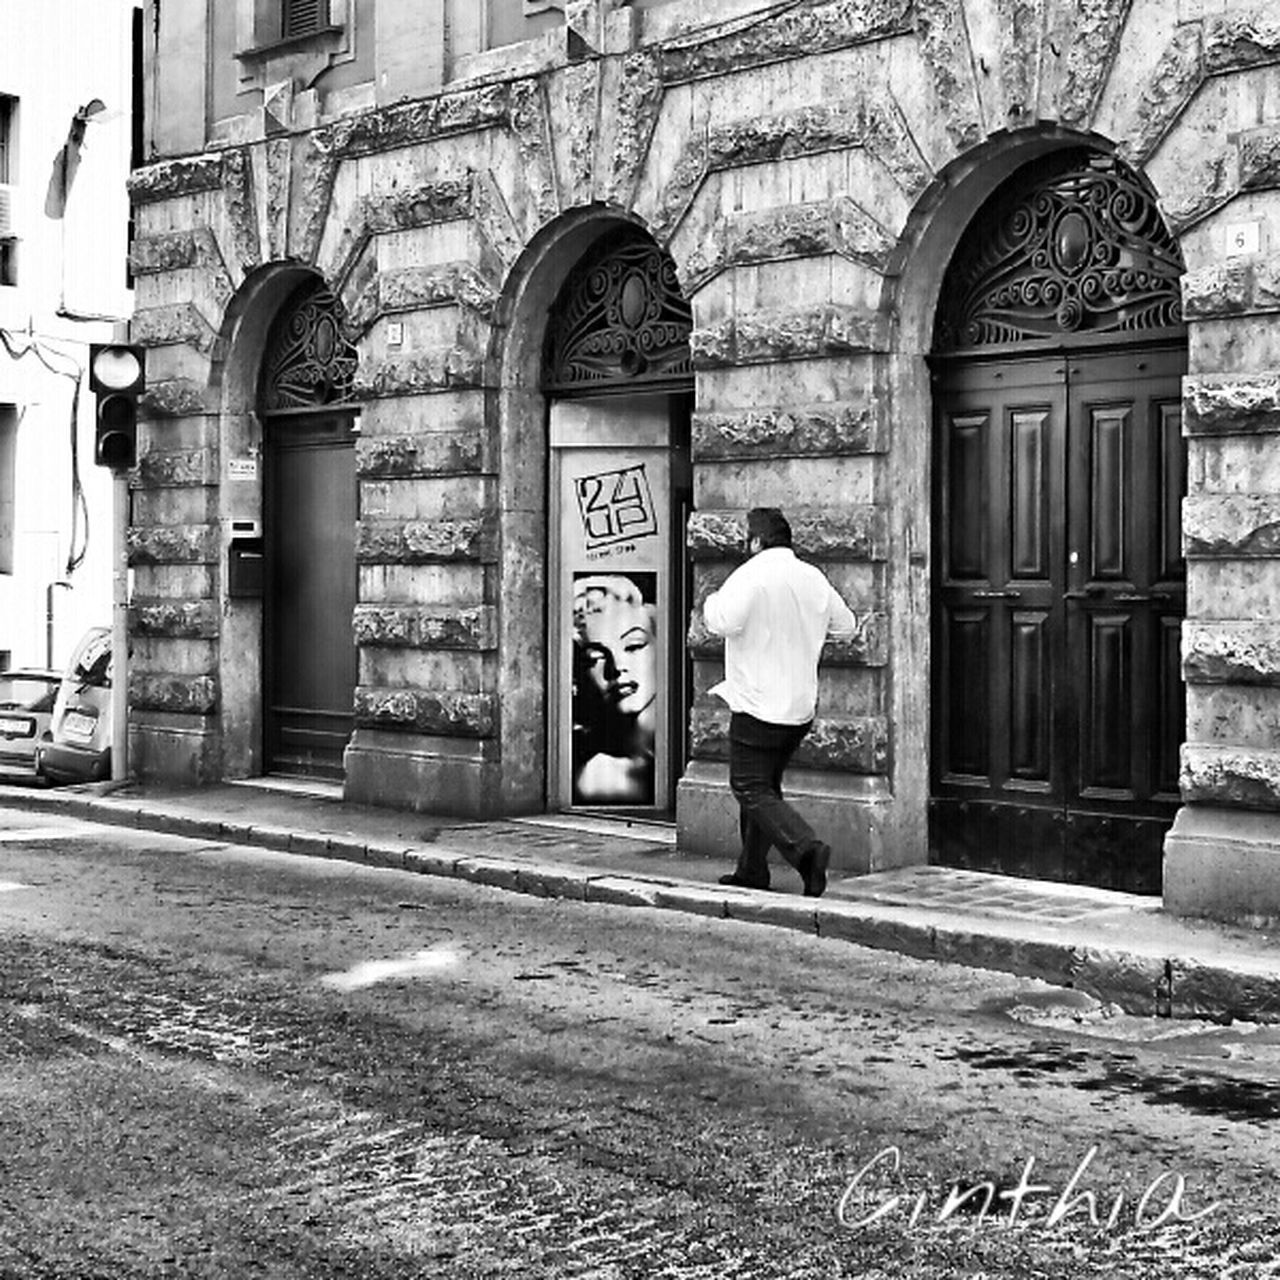 Hanging Out Streetphotography Blackandwhite Taking Photos Italianeography